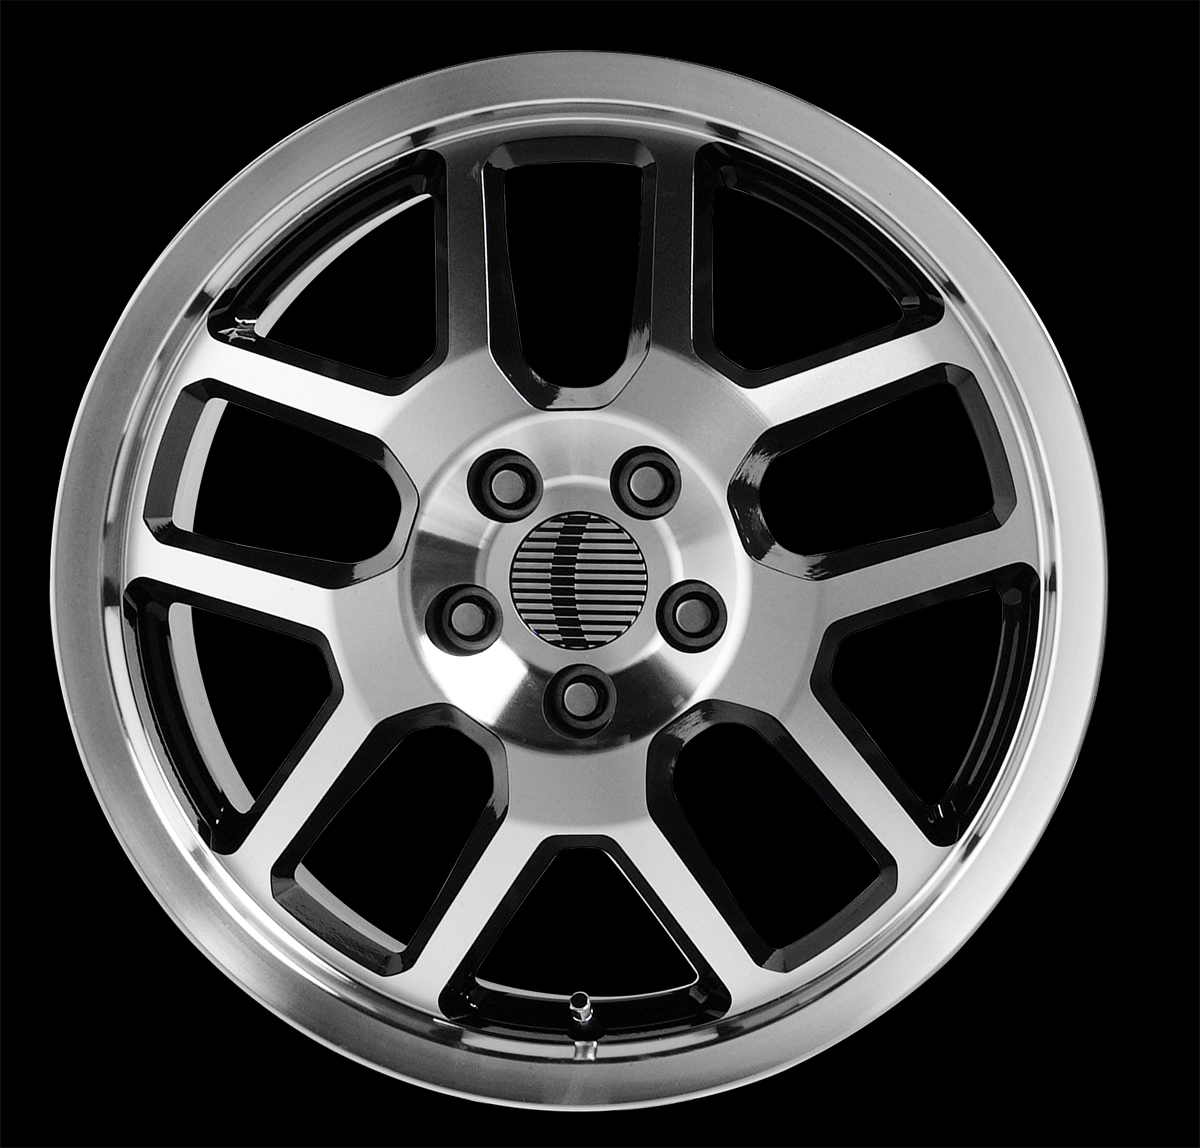 "COBRA 310 (V1146) CHROME with BLACK - 5 Lug 05-13 (sizes available 17"")"